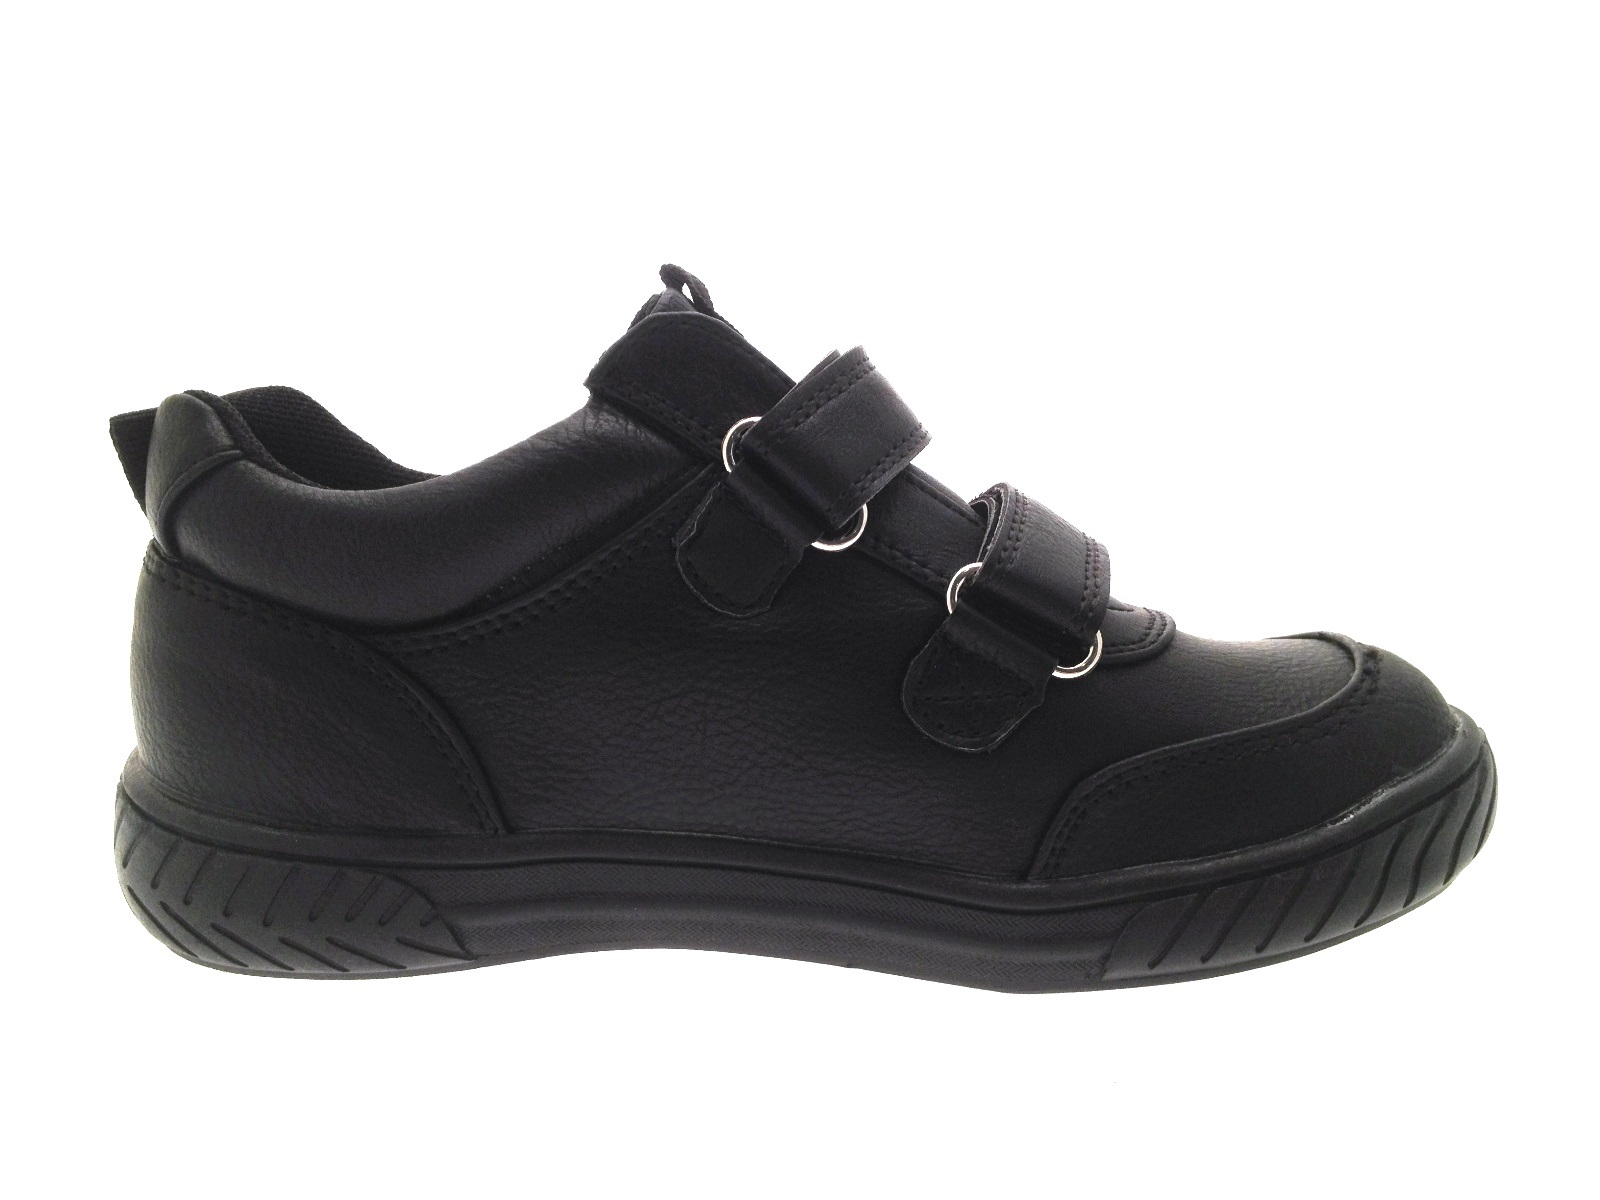 Kids Boys Black Faux Leather School Shoes Lace Up Sports Trainers Size UK 4-12